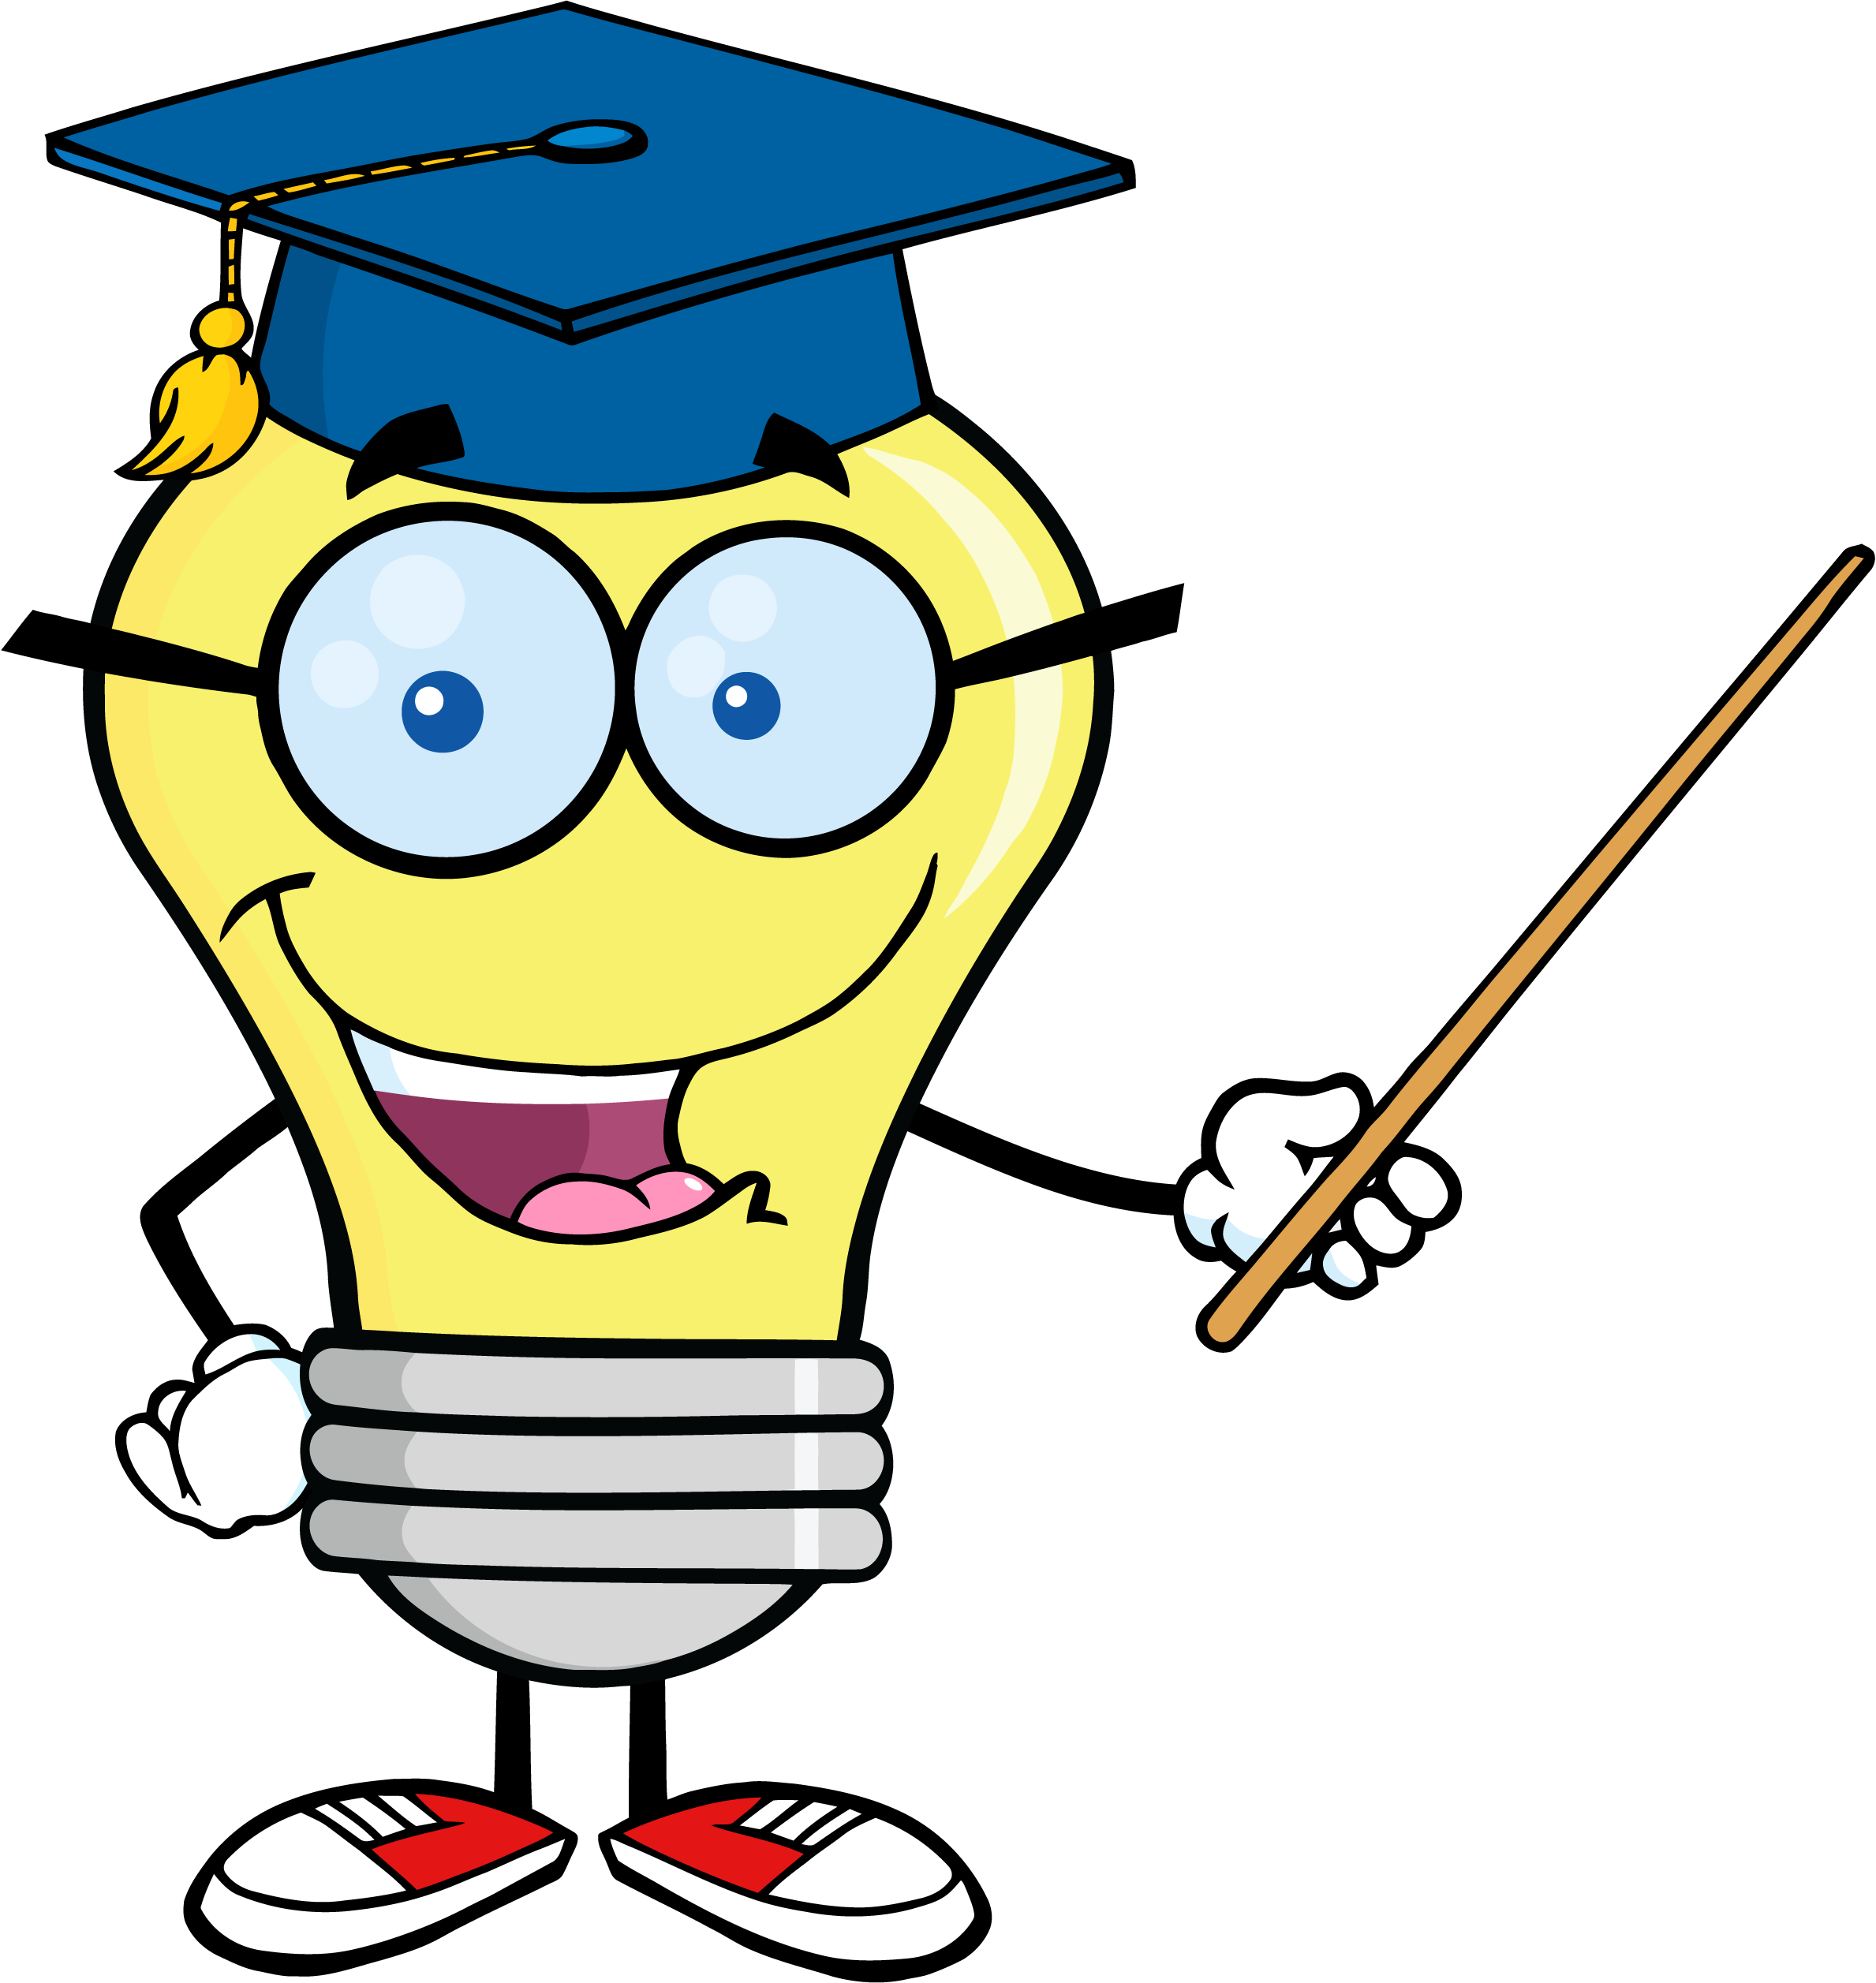 Transparent teacher character. Teaching pointer png image